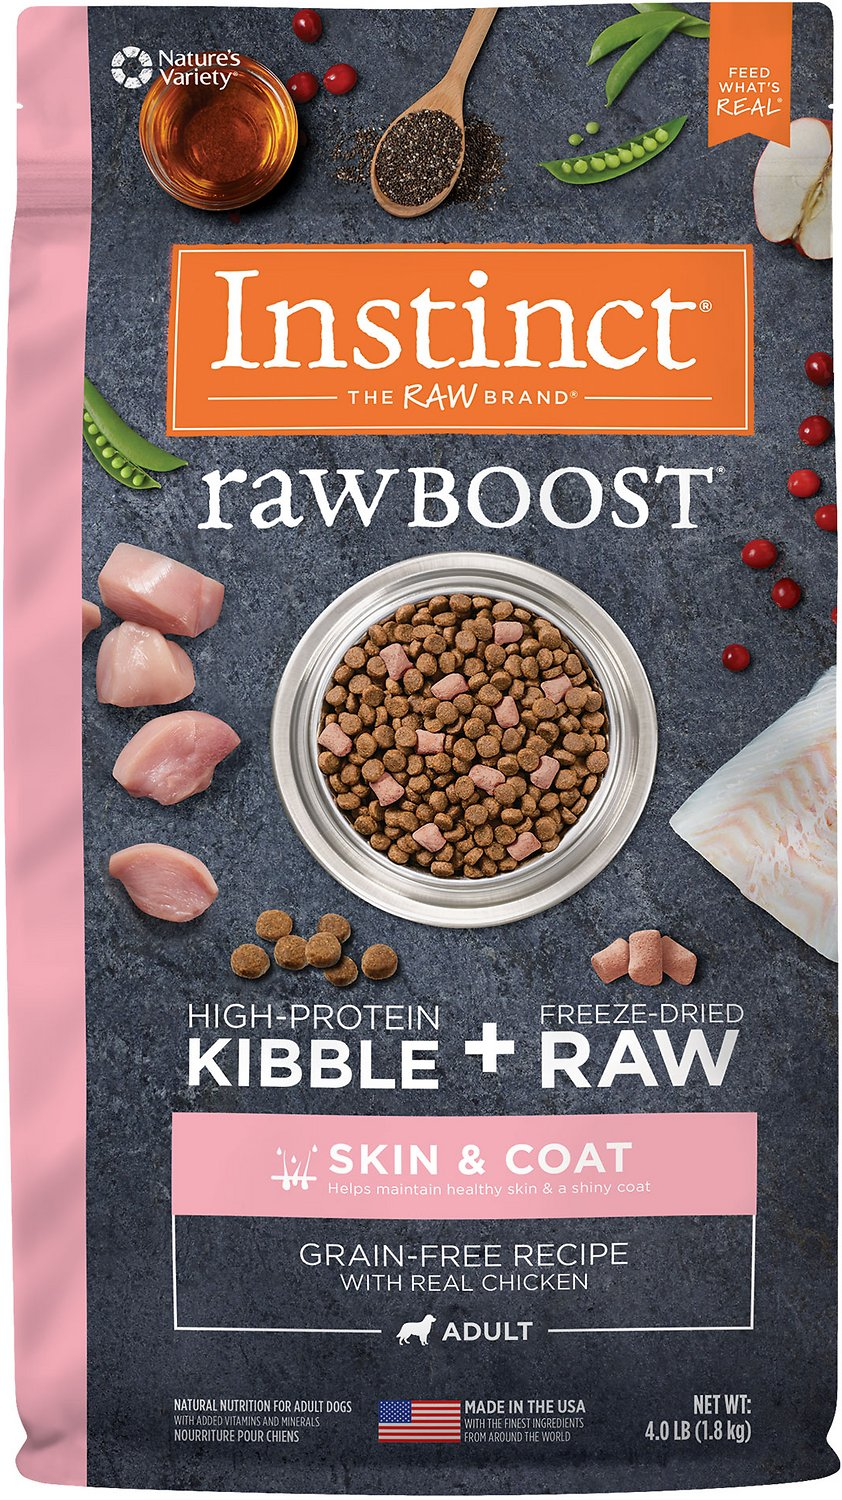 Instinct by Nature's Variety Raw Boost Skin & Coat Health Grain-Free Recipe with Real Chicken Adult Dry Dog Food, 4-lb